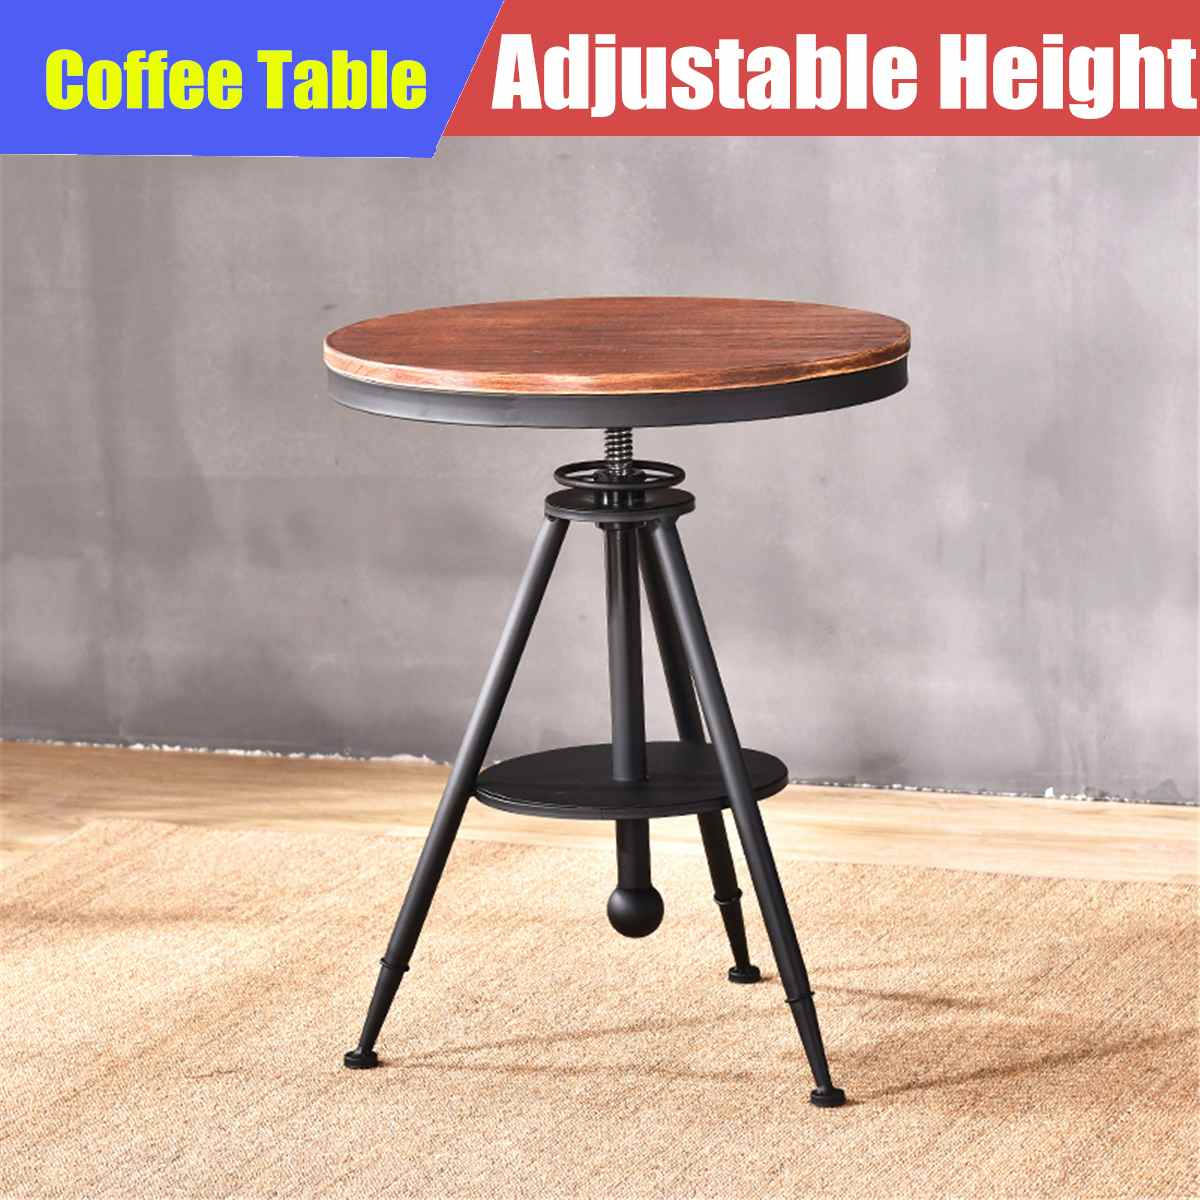 Bar Furniture Responsible Modern Simple Bar Chair Lifted Rotated Coffee Shop Stool Multi-function Cashier Seat With Footrest Household Leisure Pu Stool Furniture